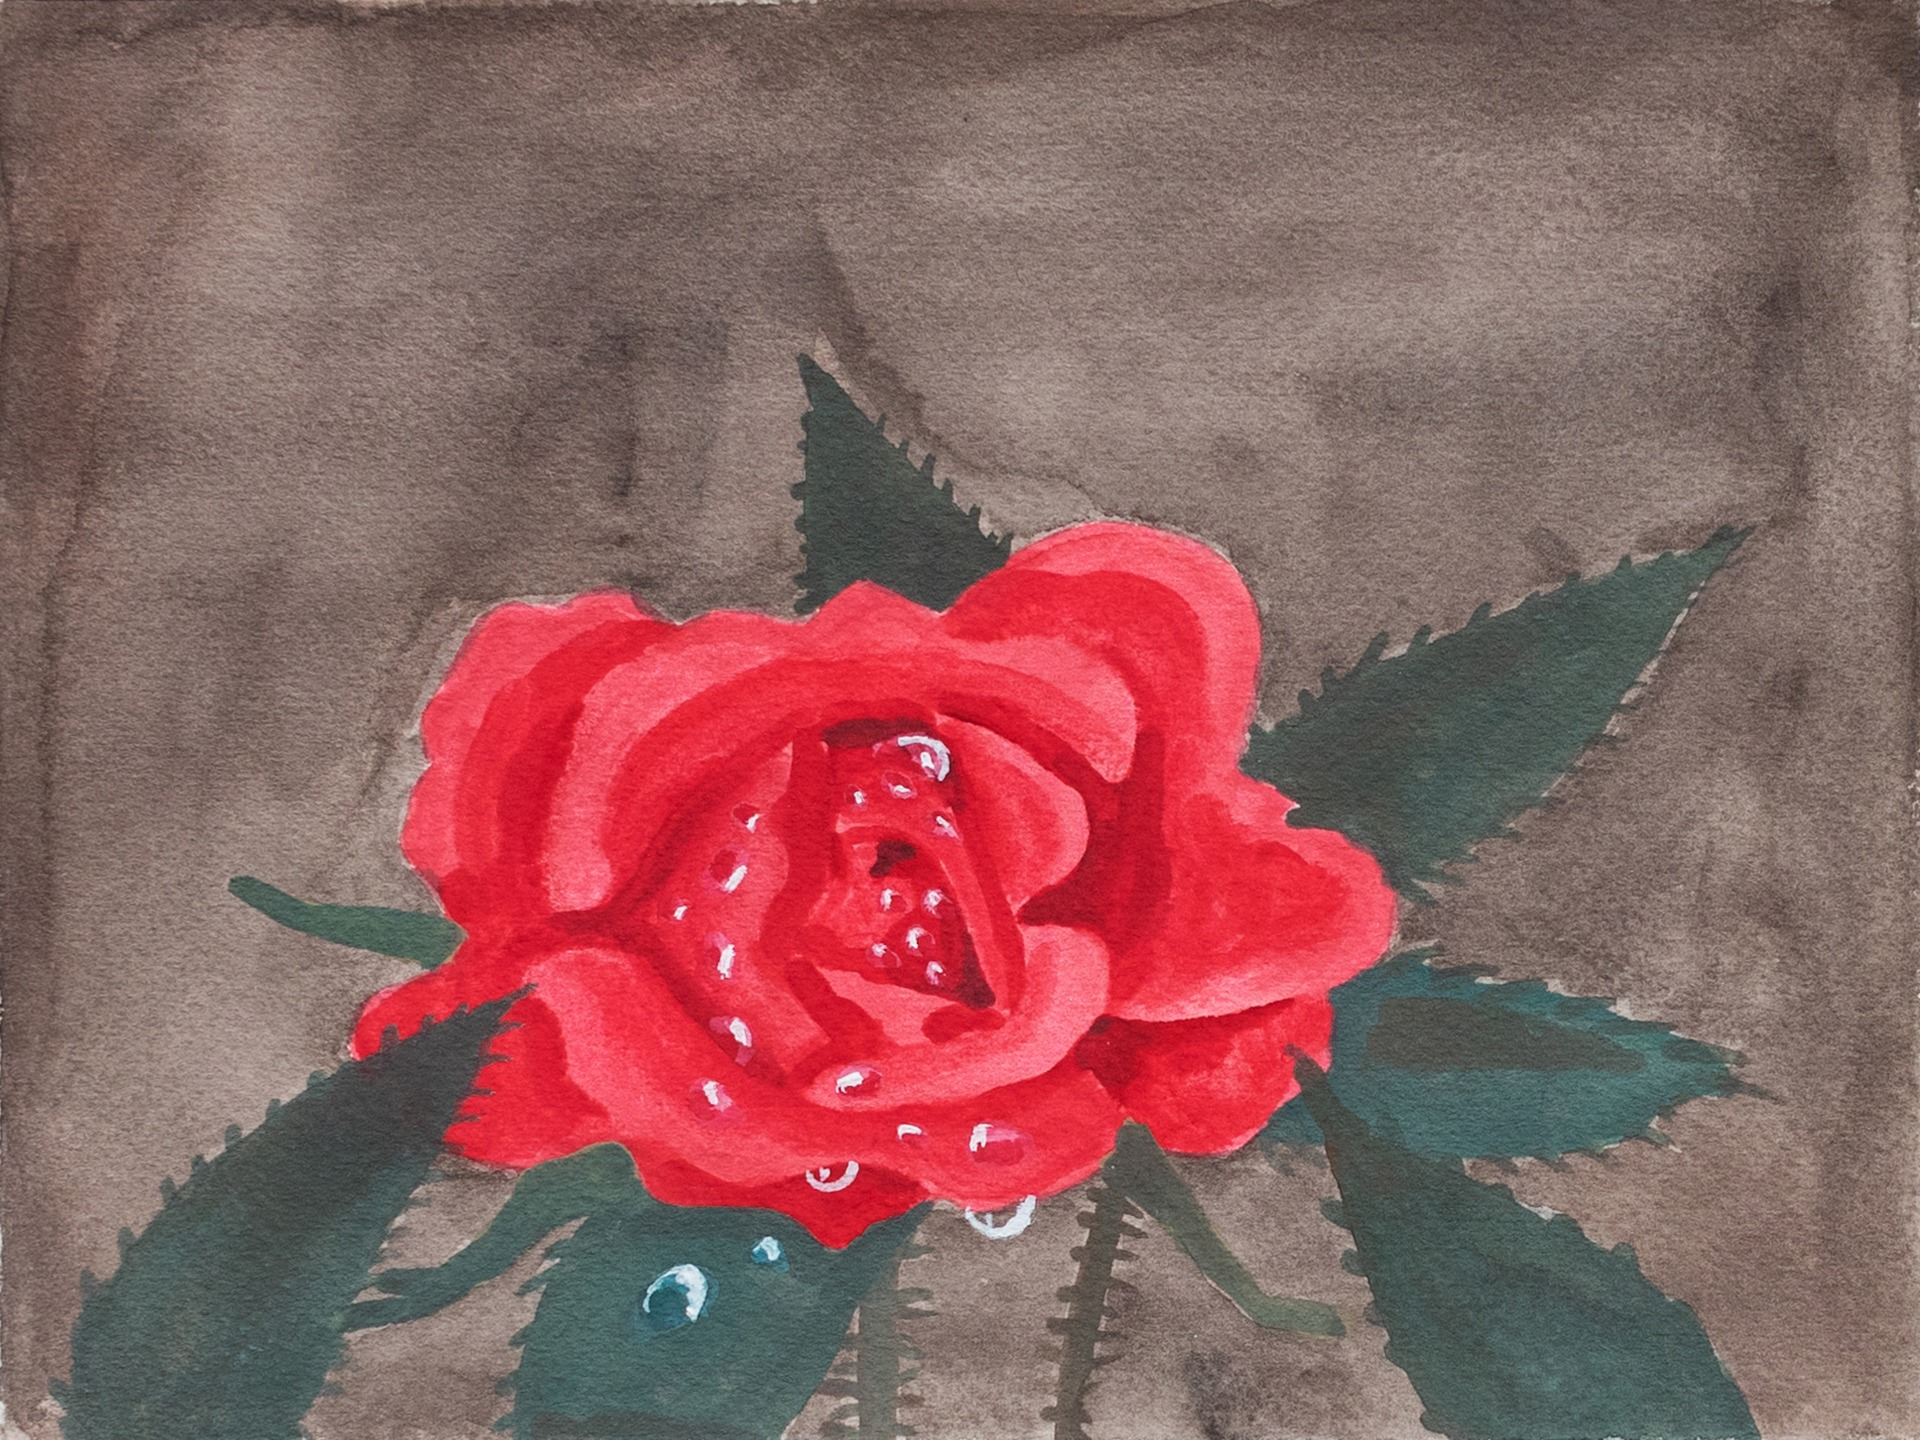 A painting by Claudia Keep titled Untitled (Rose), dated 2020.